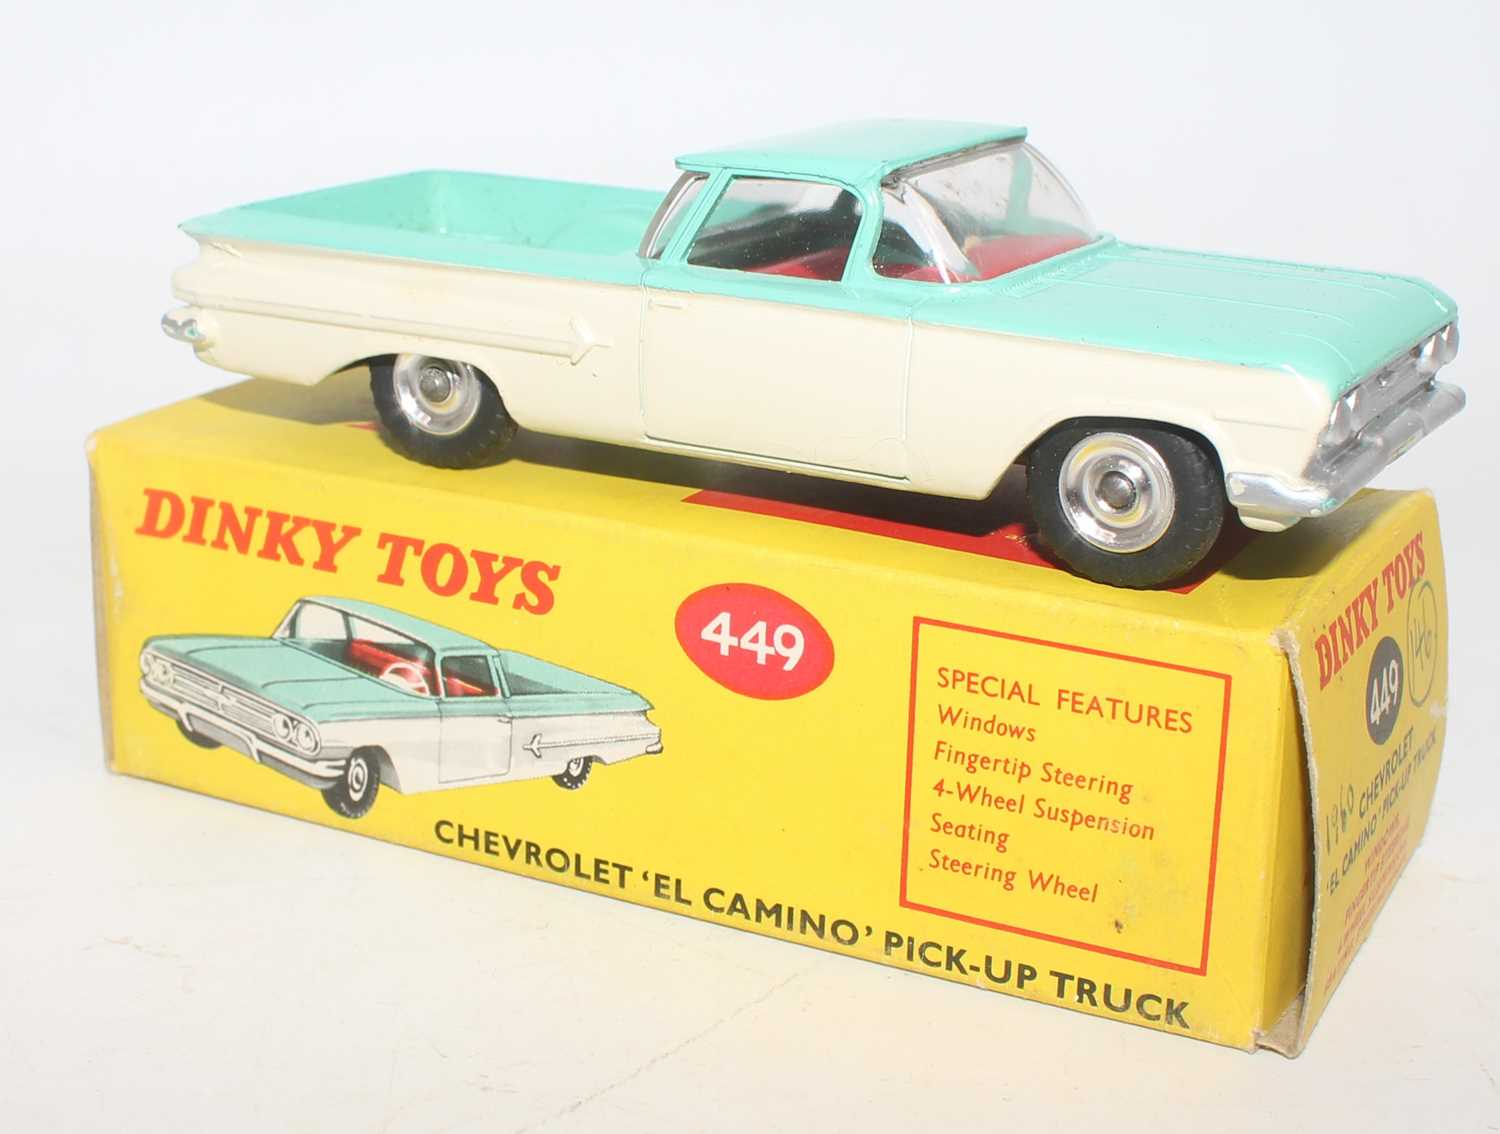 Dinky Toys No. 449 Chevrolet el Camino pickup truck comprising of turquoise and white body with - Image 2 of 2